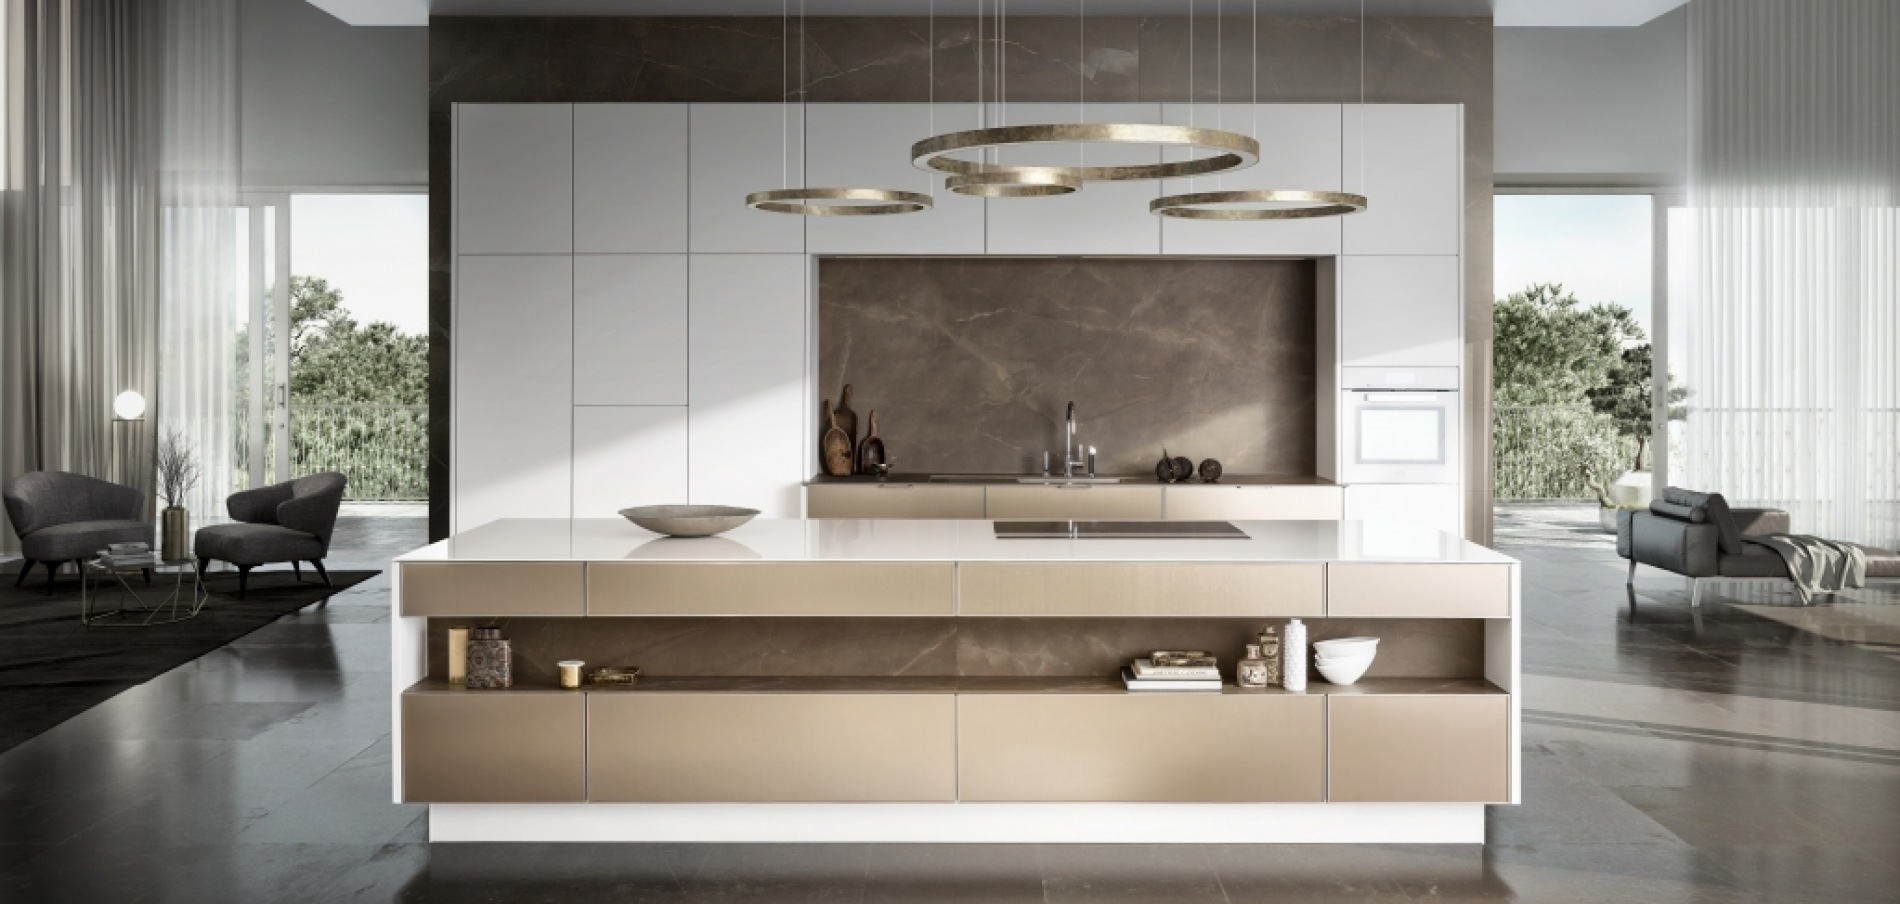 SieMatic white and bronze